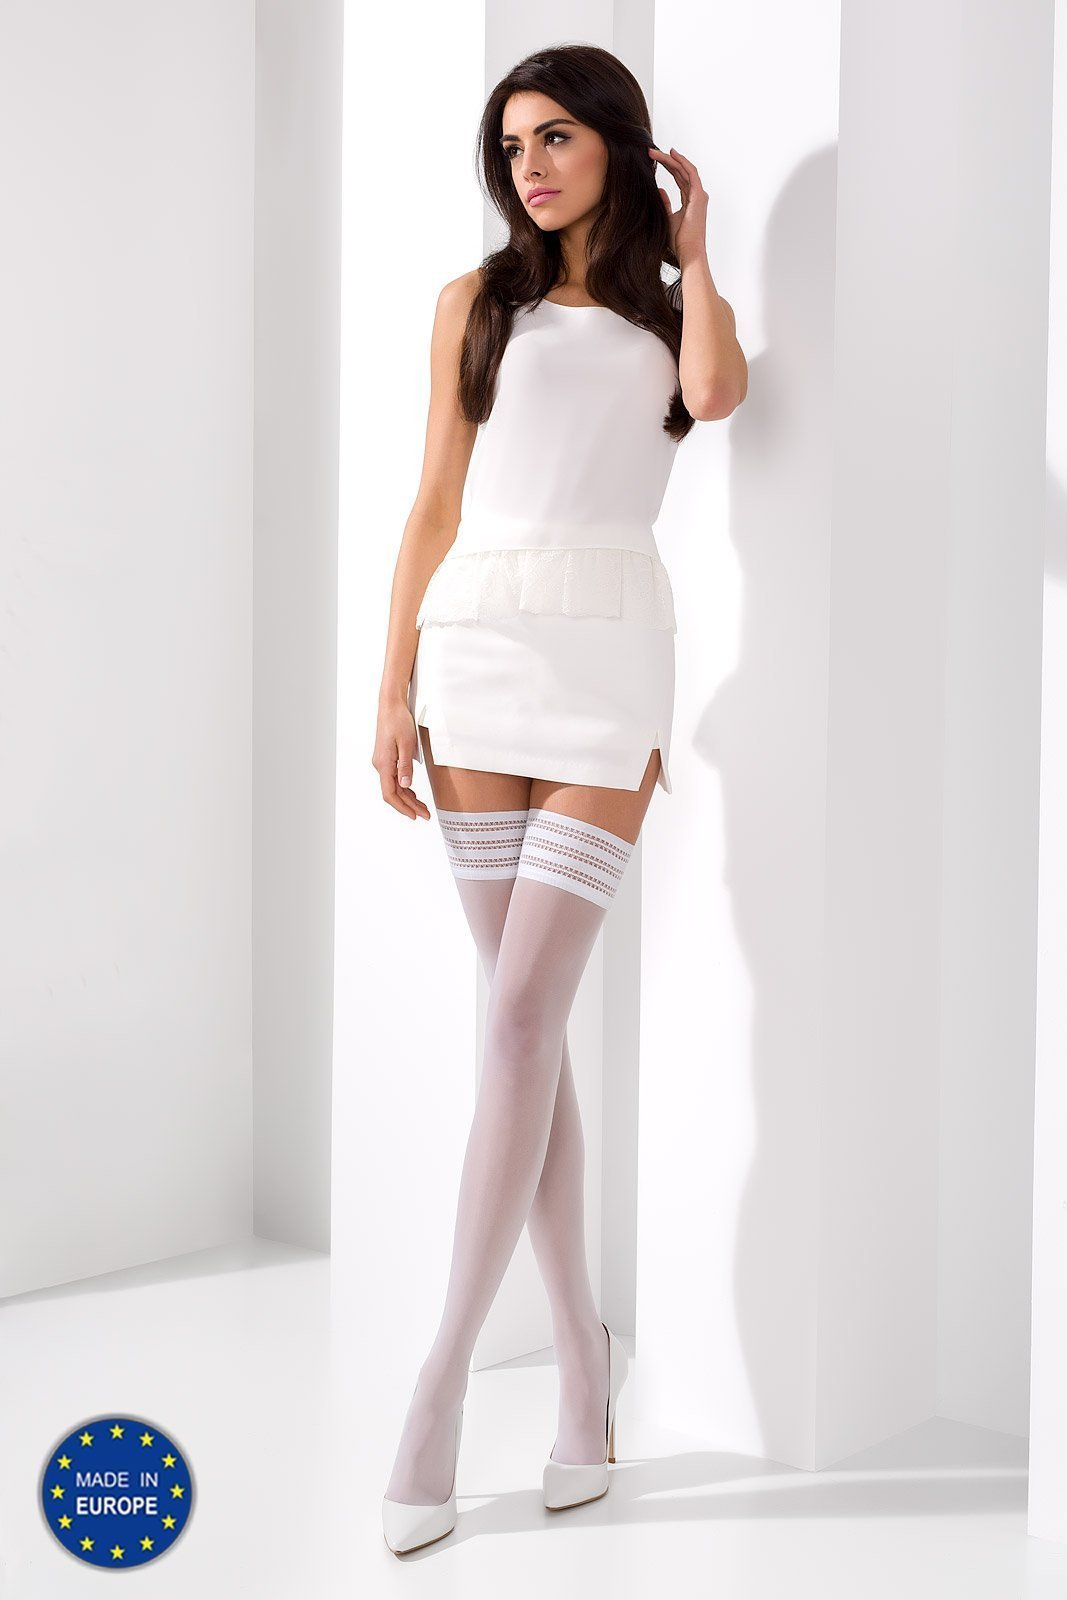 Passion Stockings 1/2 White Thigh High Stockings